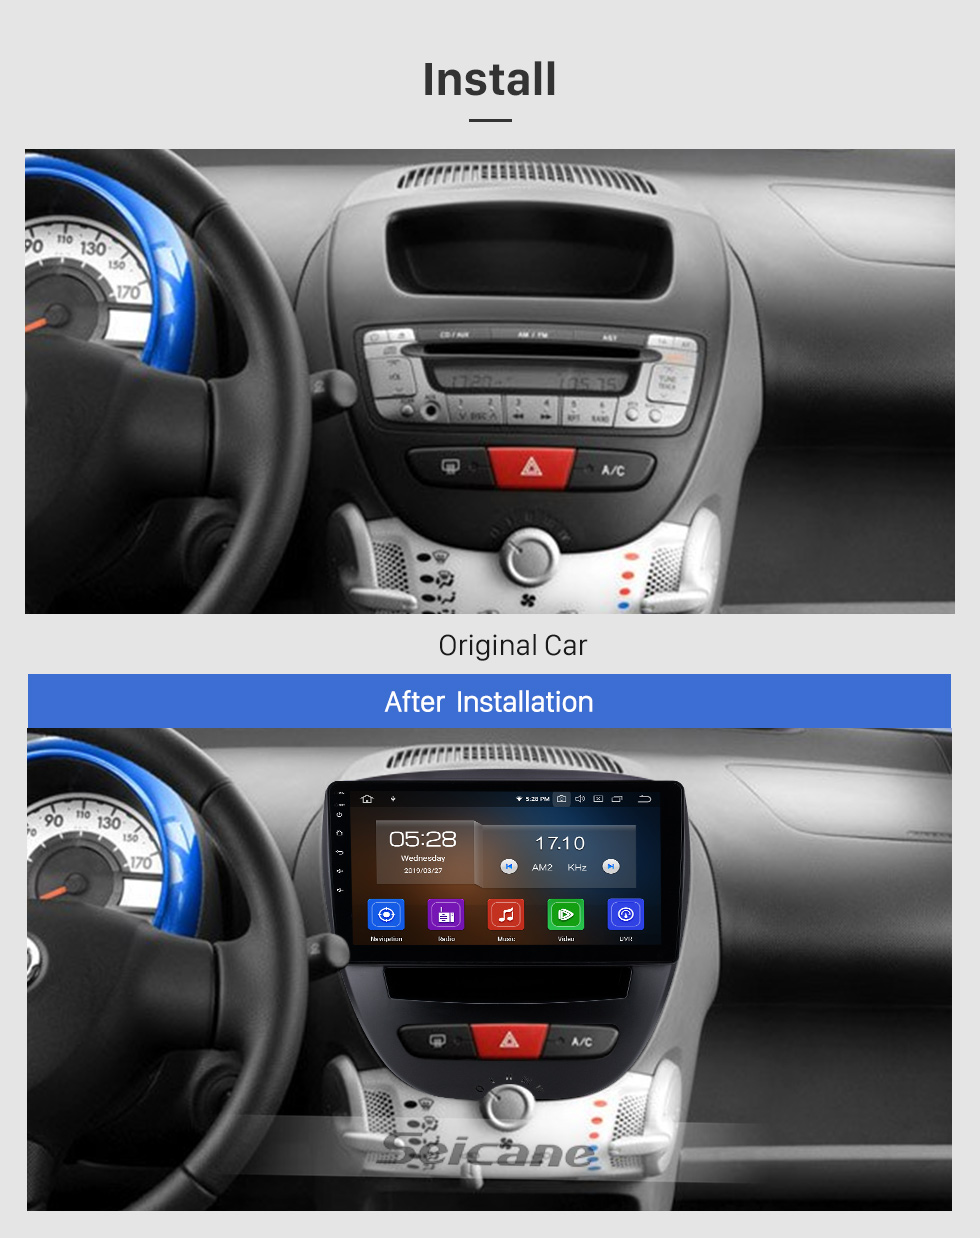 Seicane 10,1 Zoll 2005-2014 Peugeot 107 Android 9.0 GPS Navigationsradio Bluetooth HD Touchscreen AUX Carplay Musikunterstützung 1080P Video Digital TV Rückfahrkamera